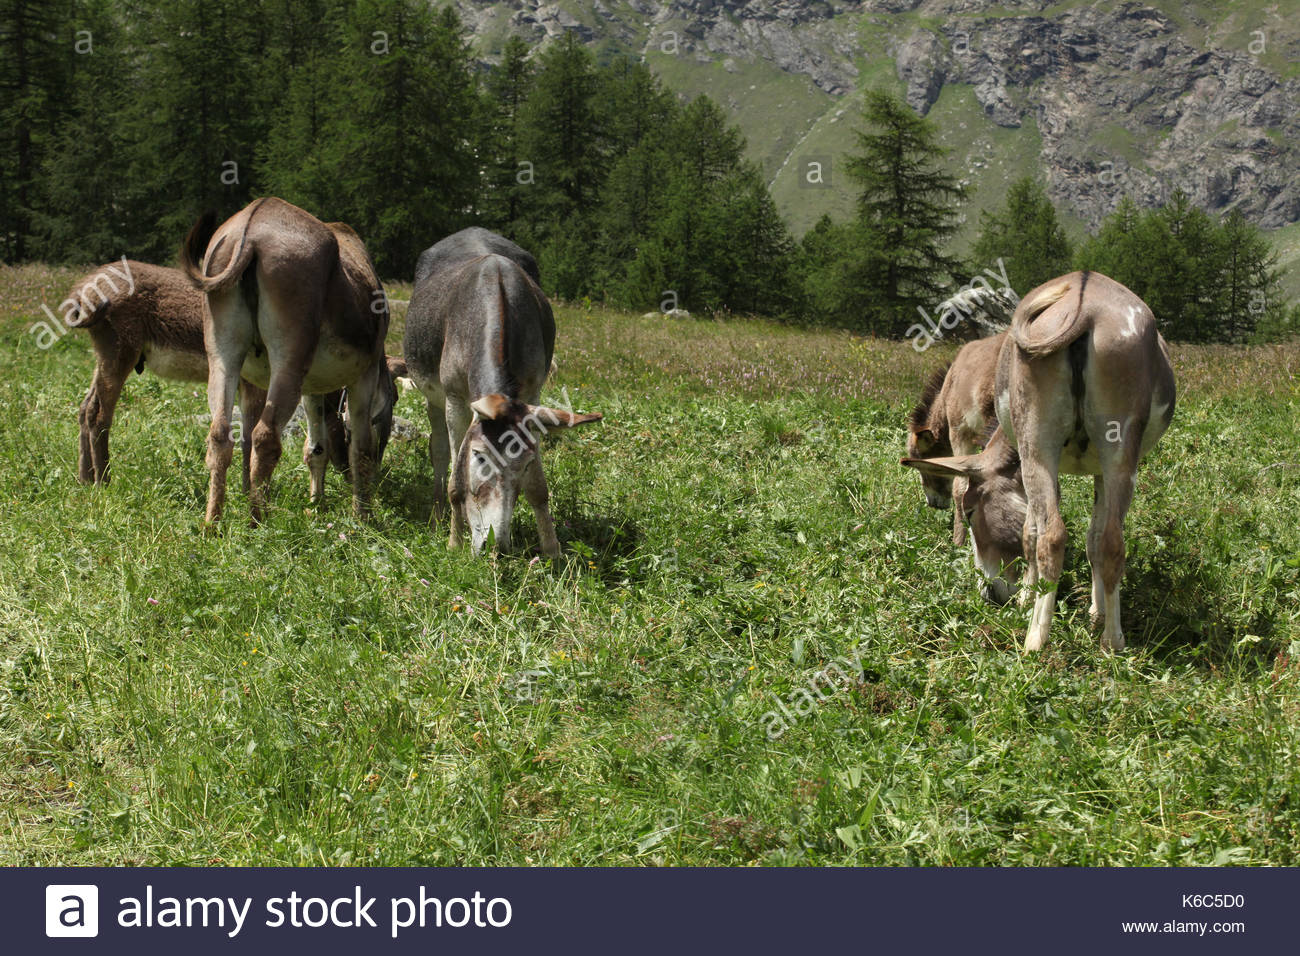 a group of donkeys grazing on a meadow on italin alps valle d'aosta - Stock Image